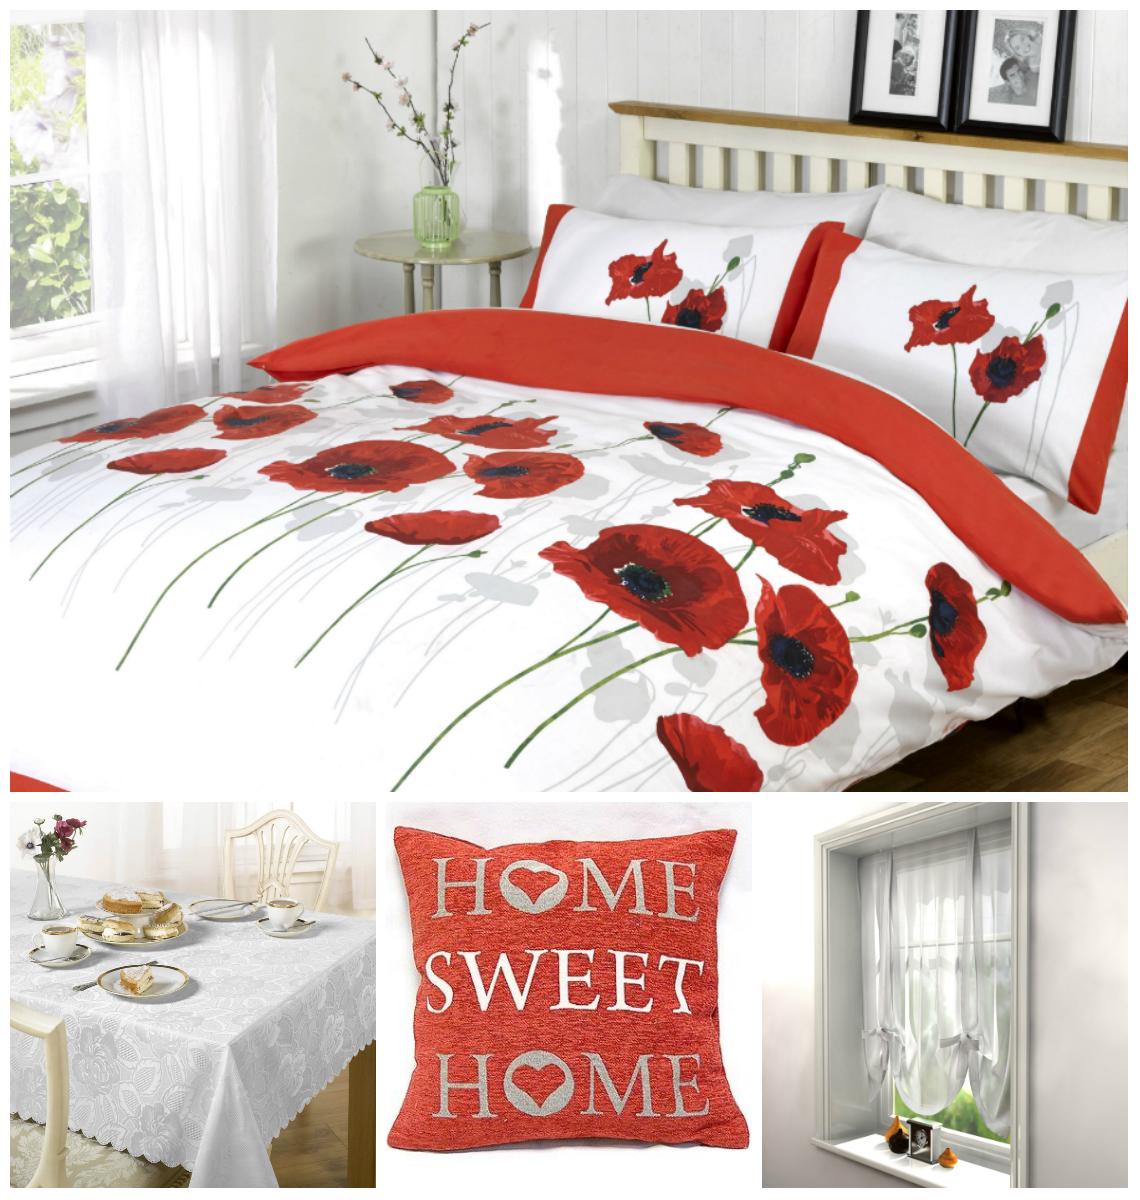 We stock all the bedding and textiles you need for a beautiful home.